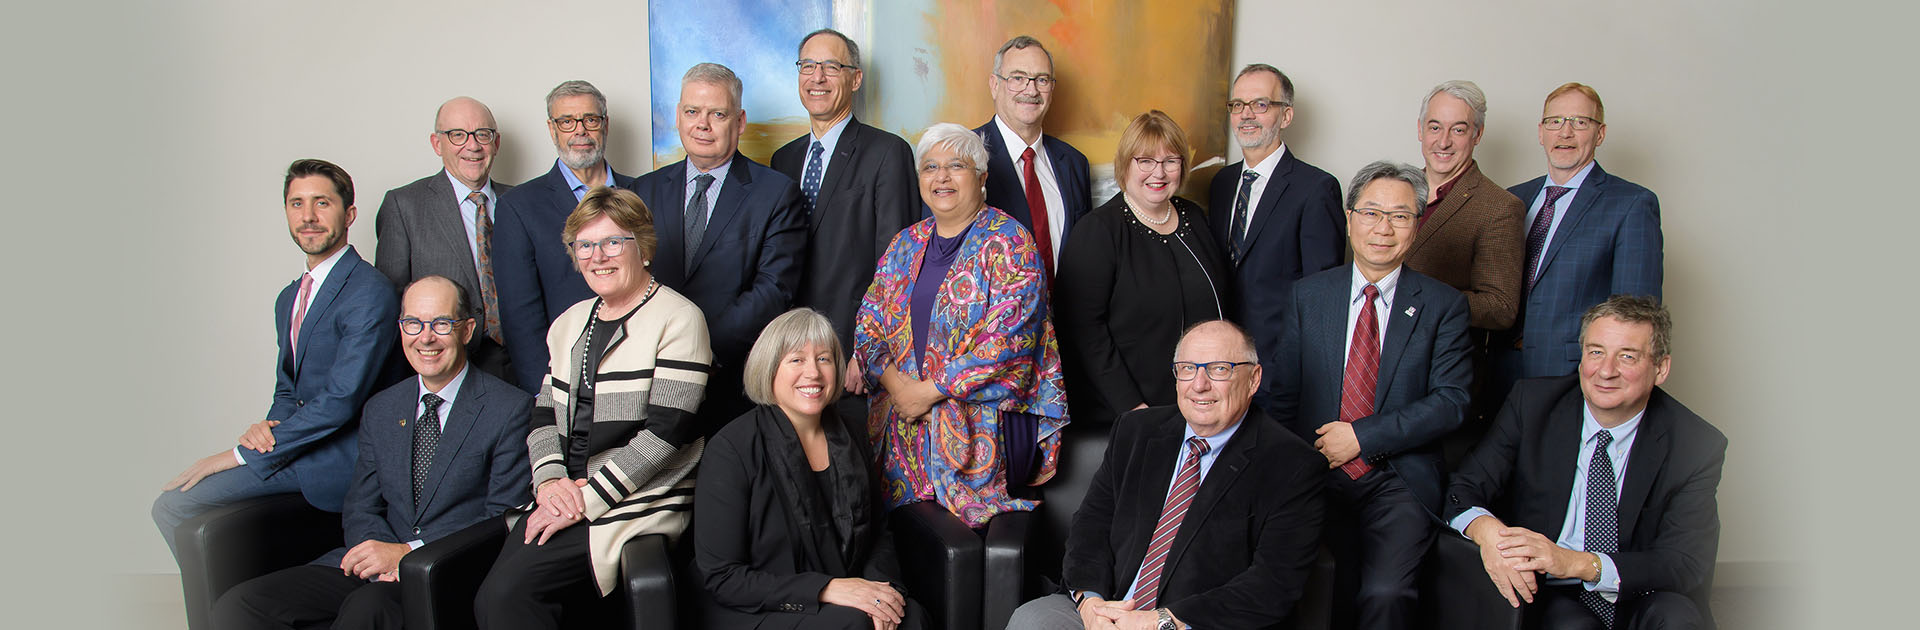 members of the AFMC board